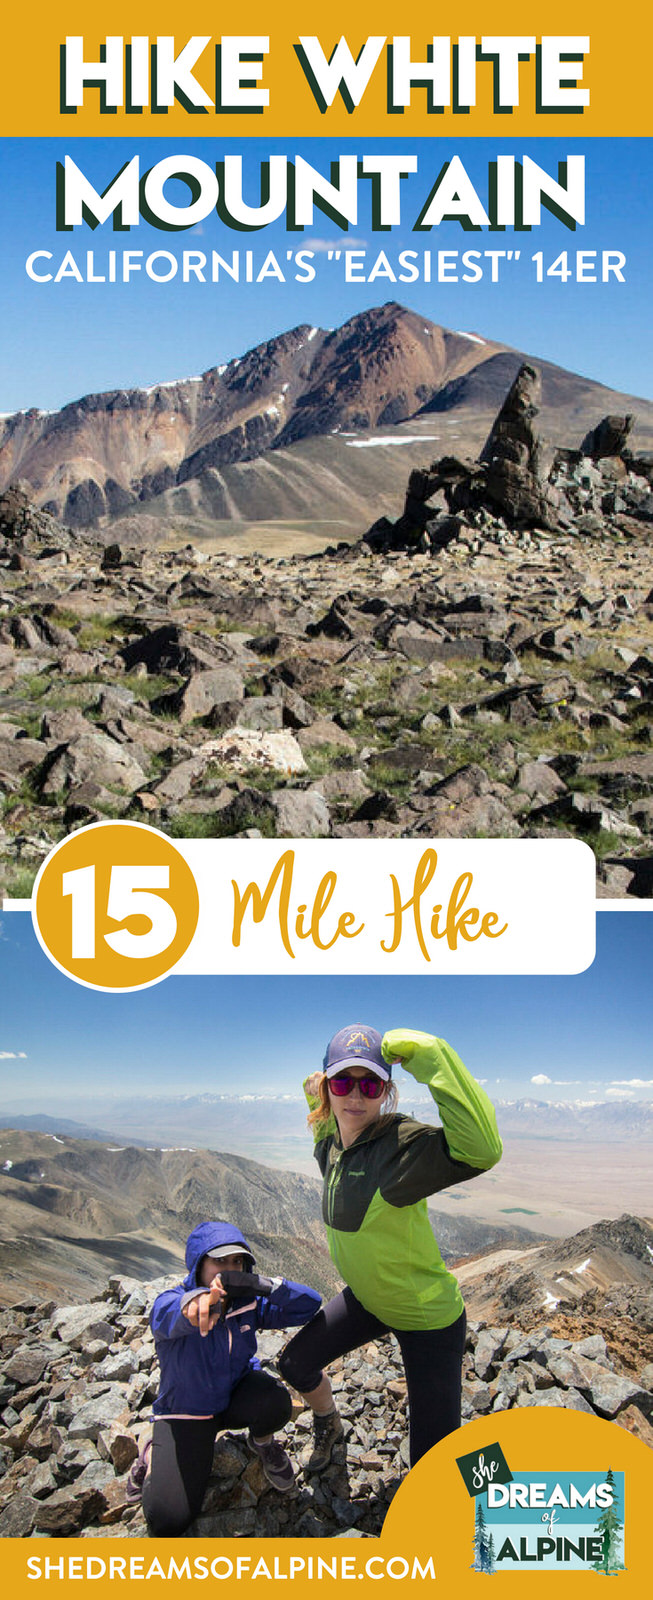 Your Complete Guide to Hiking White Mountain California 14er